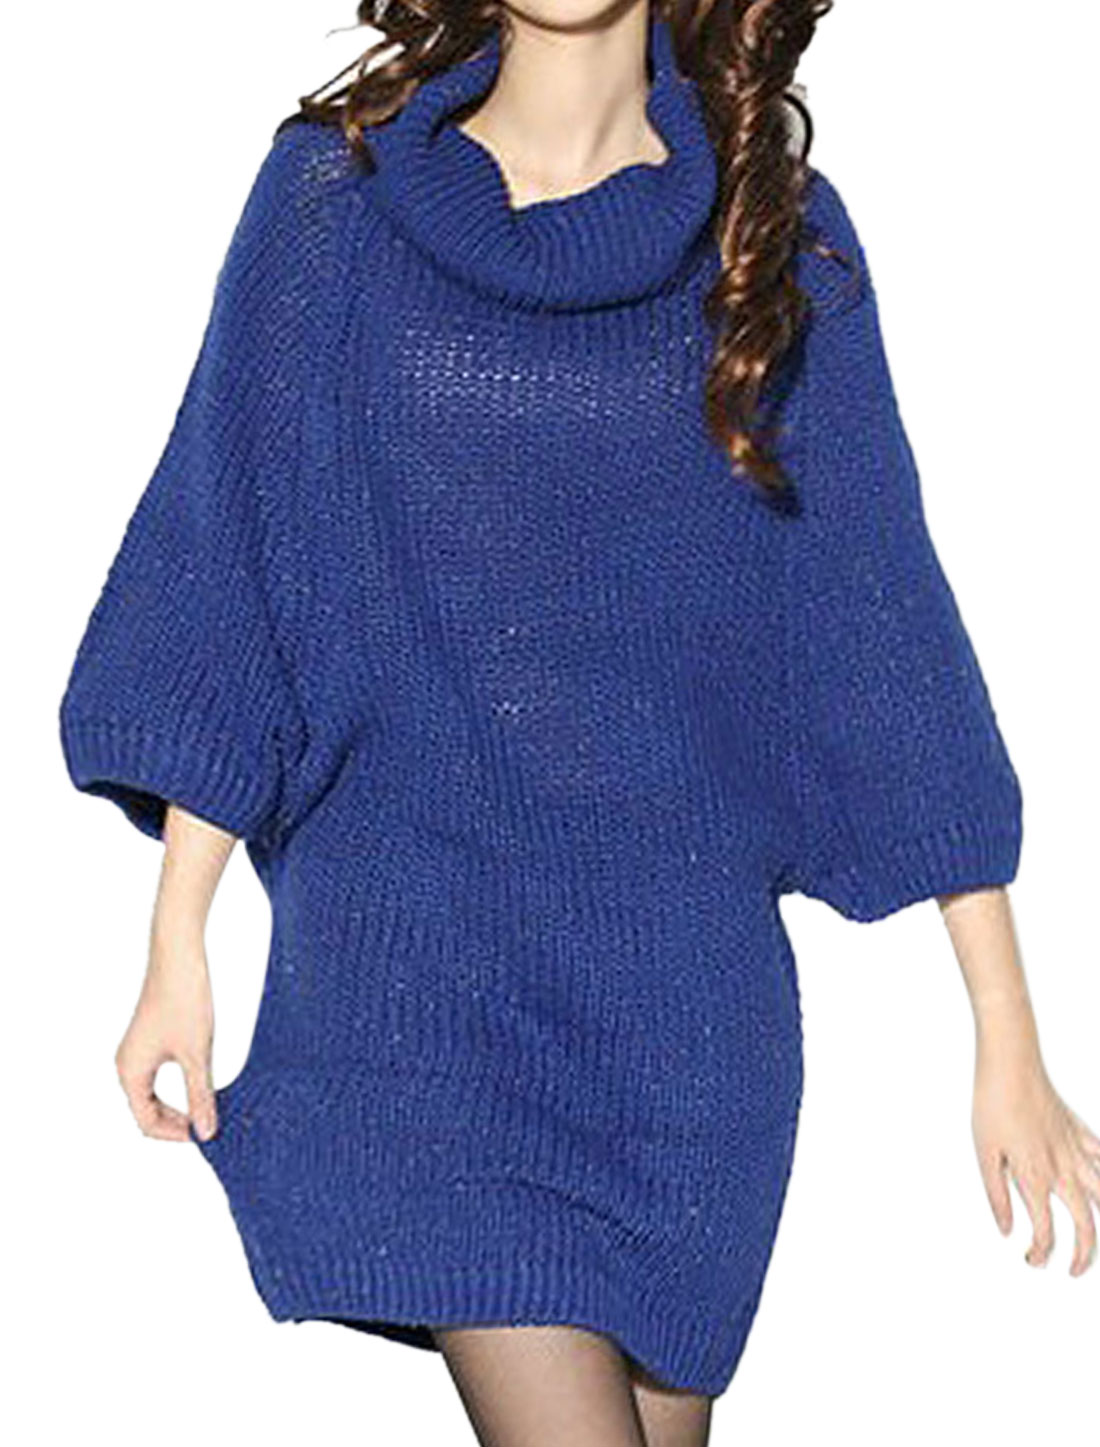 Women Sapphire Blue Turtle Neck Fahion Rib Pattern Batwing Sleeve Sweater XS